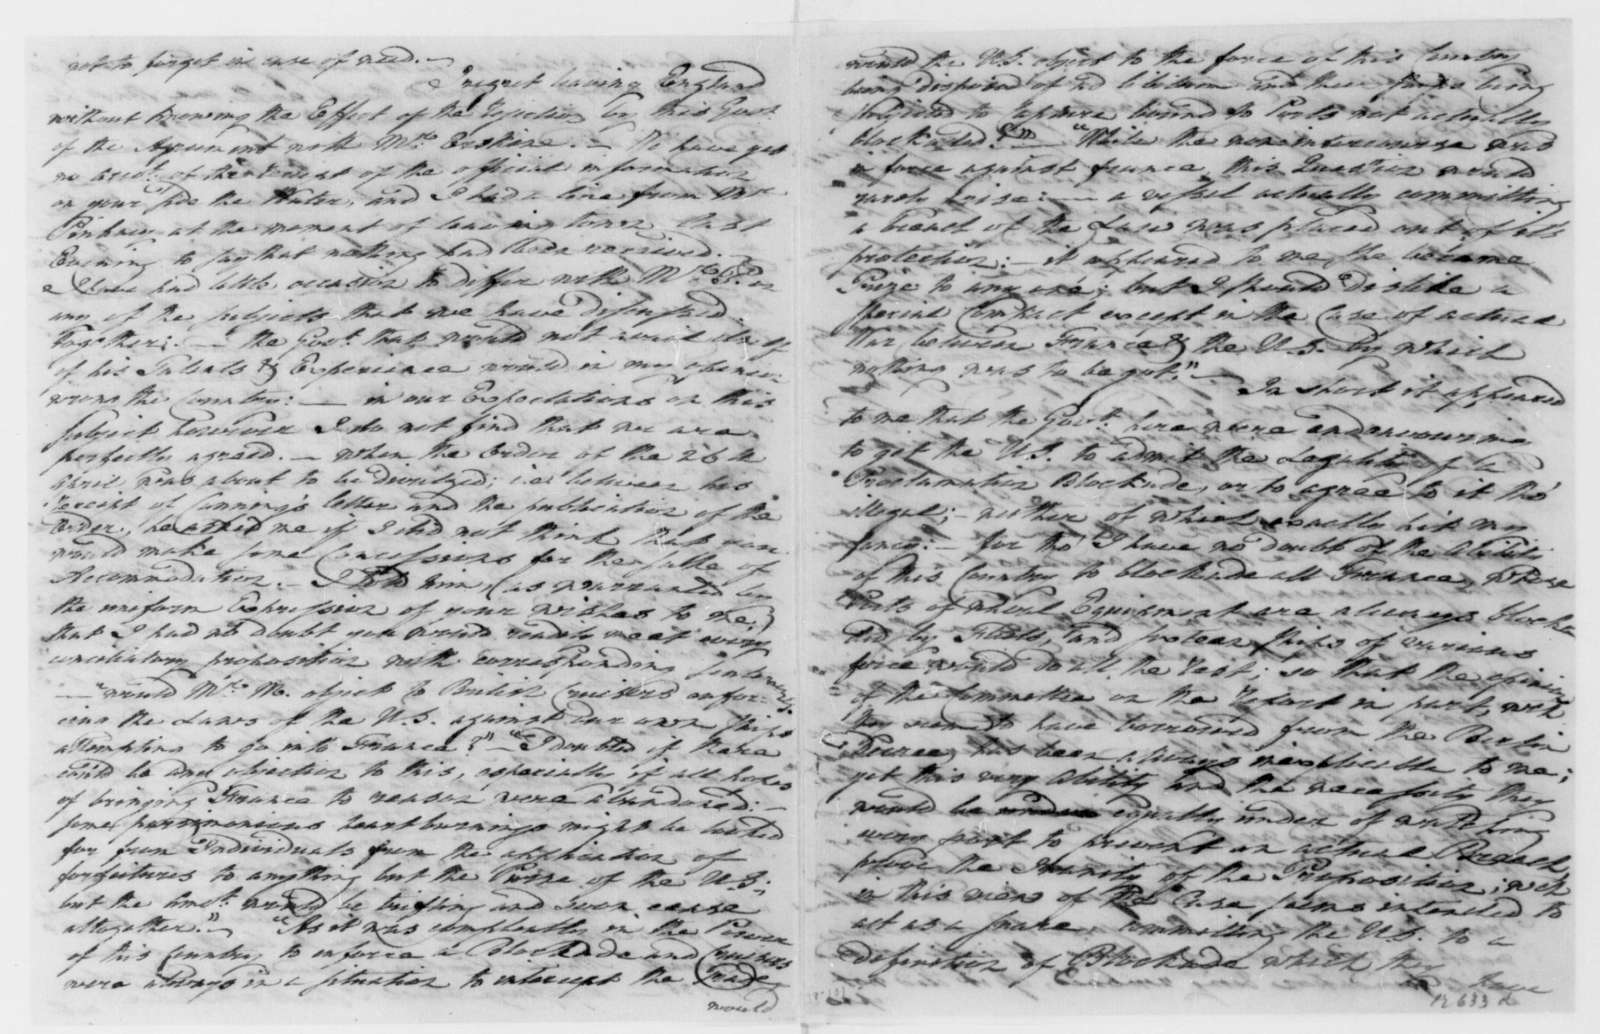 George Joy to James Madison, September 9, 1809. With Copy.